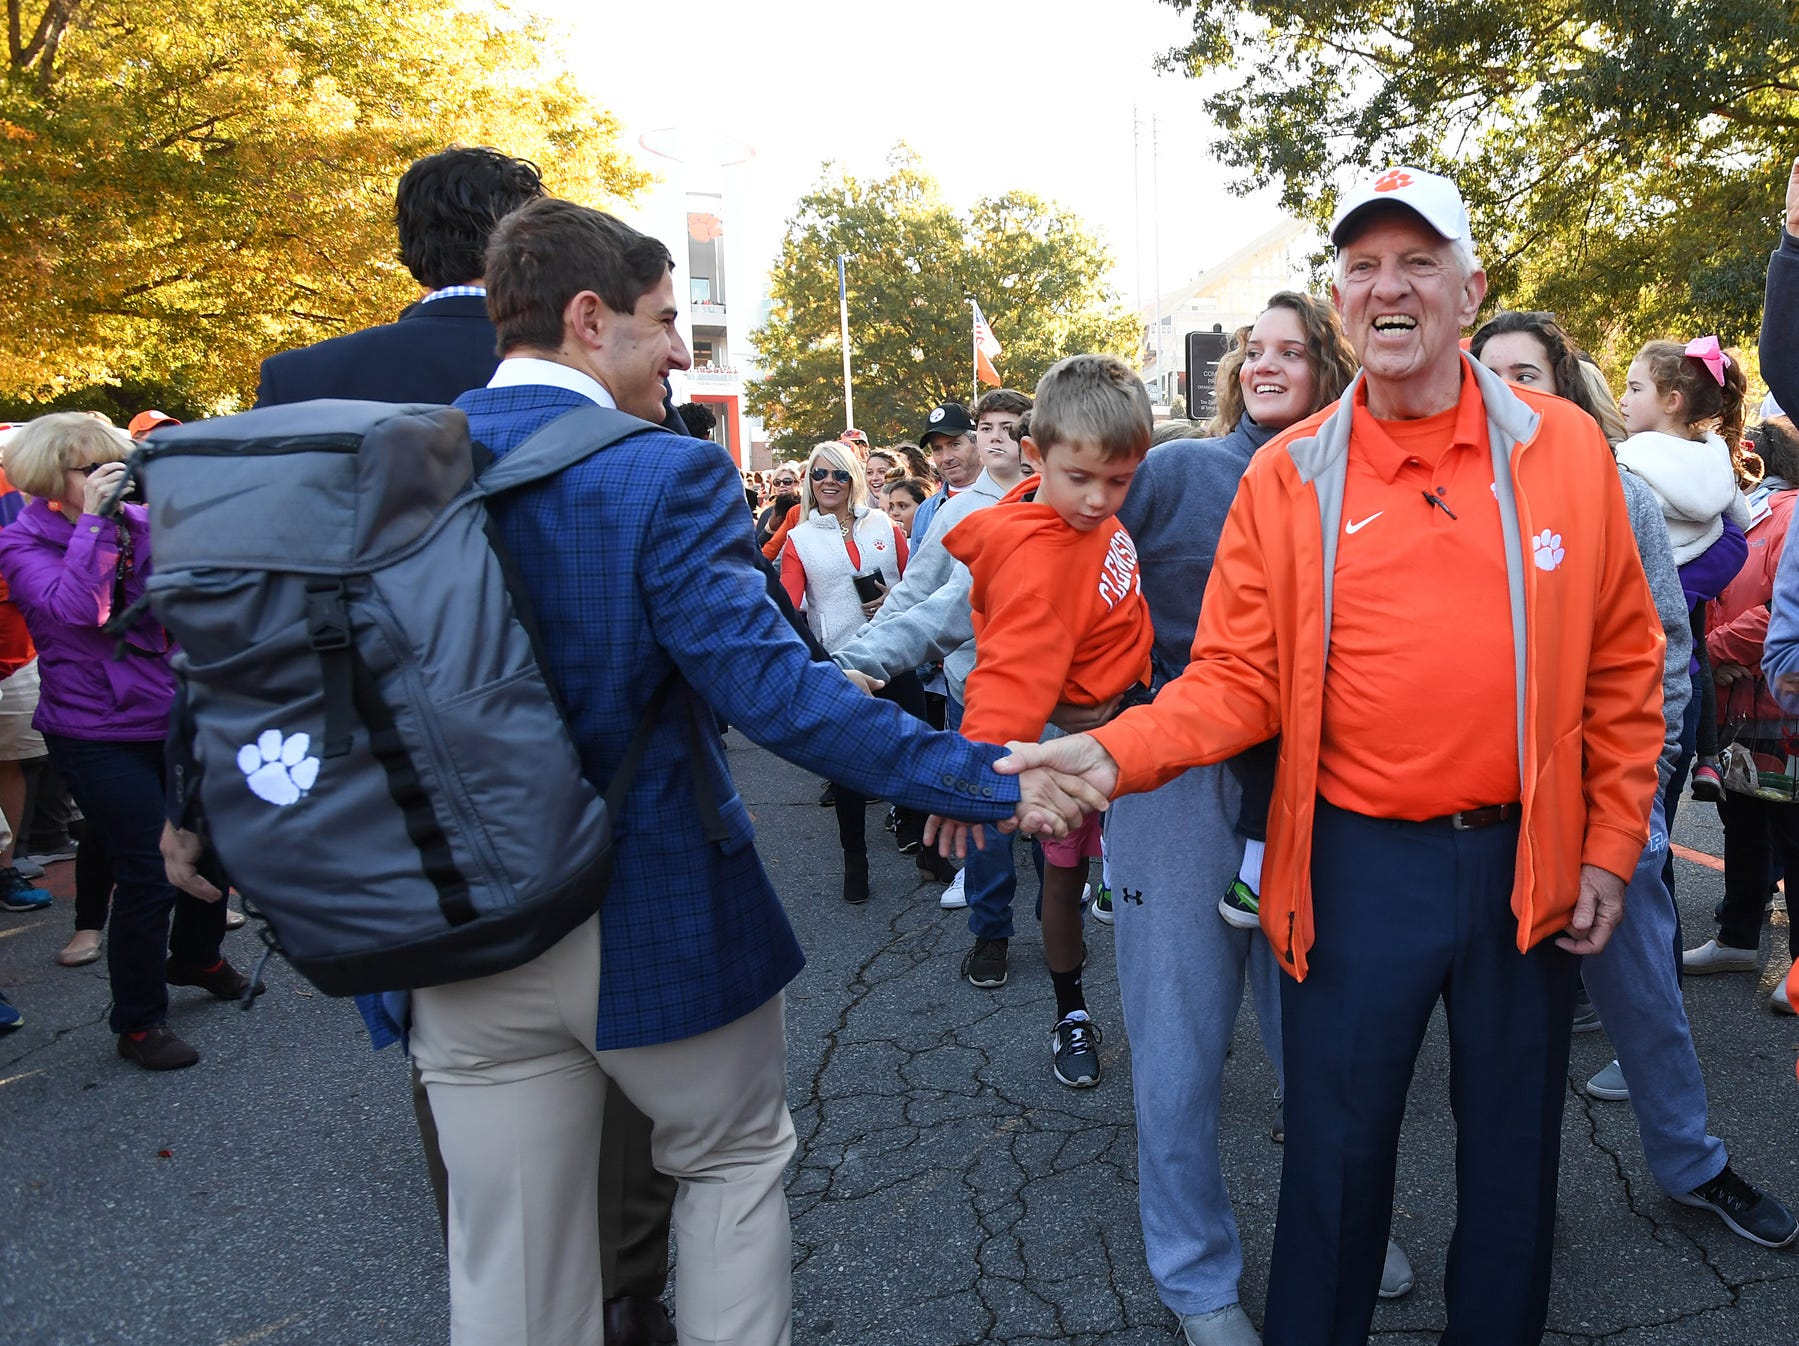 Clemson wide receiver Will Swinney takes part in Tiger Walk before the Tiger's game against Louisville Saturday, November 3, 2018 at Clemson's Memorial Stadium.